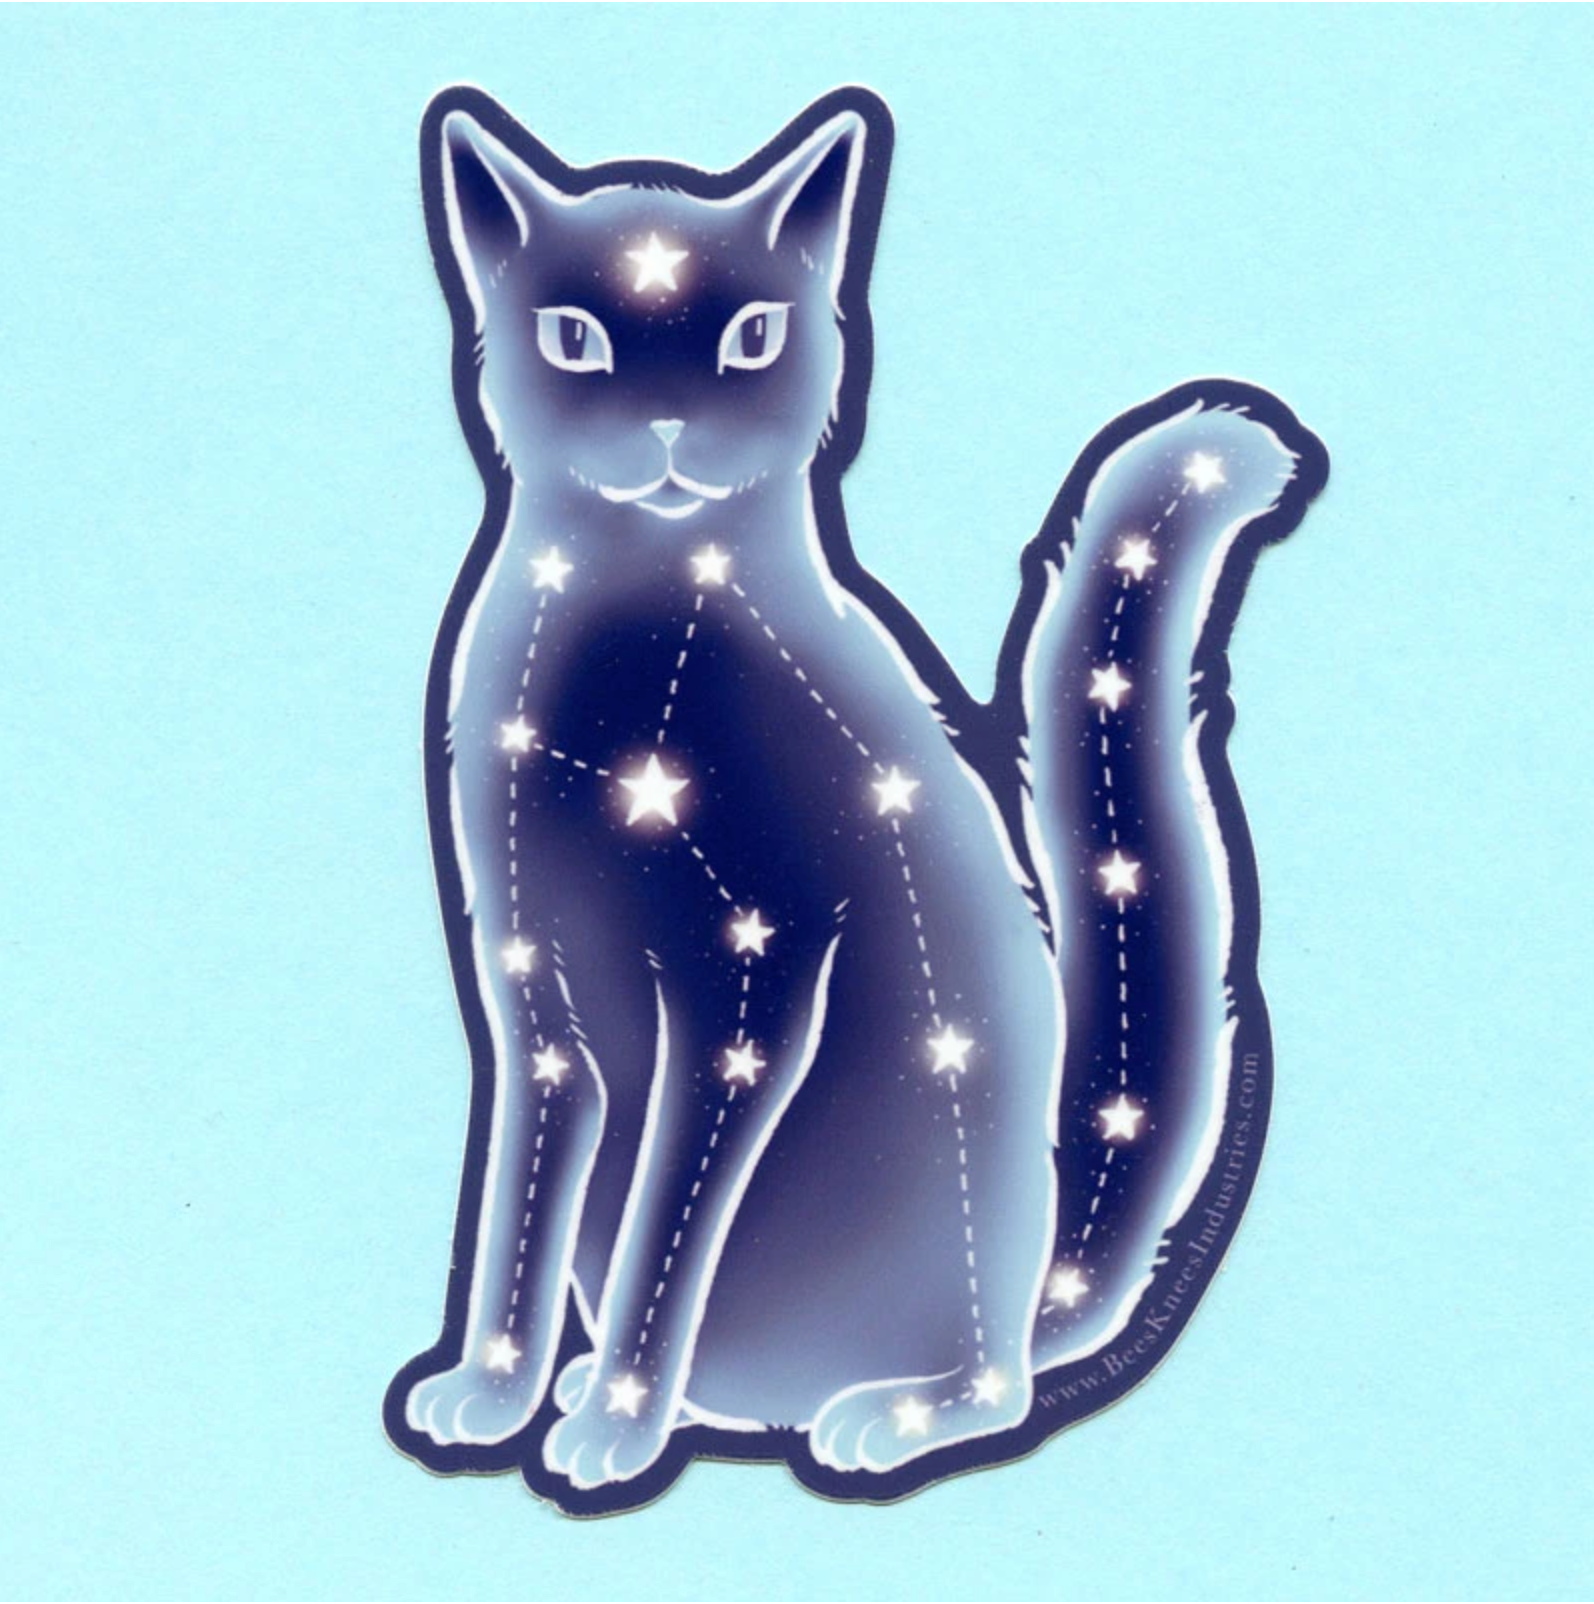 """Celestial Cat"" - Sticker"